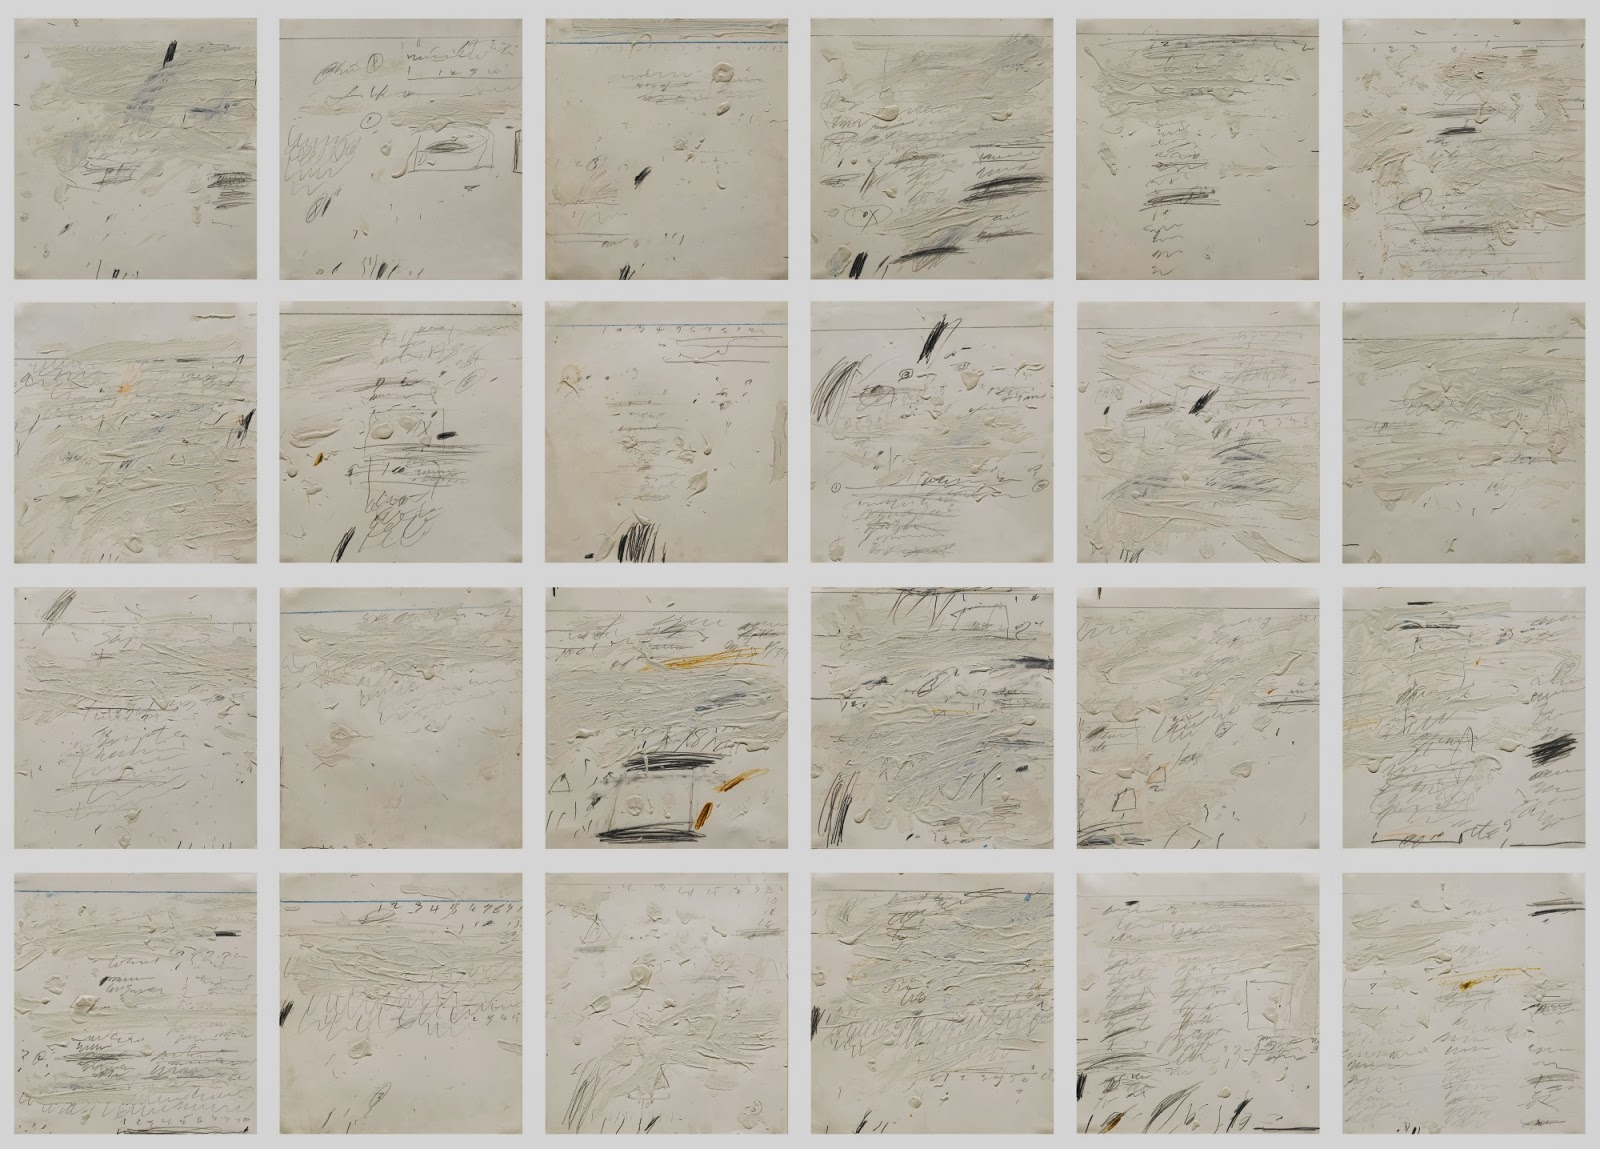 Twombly-PoemsToTheSea